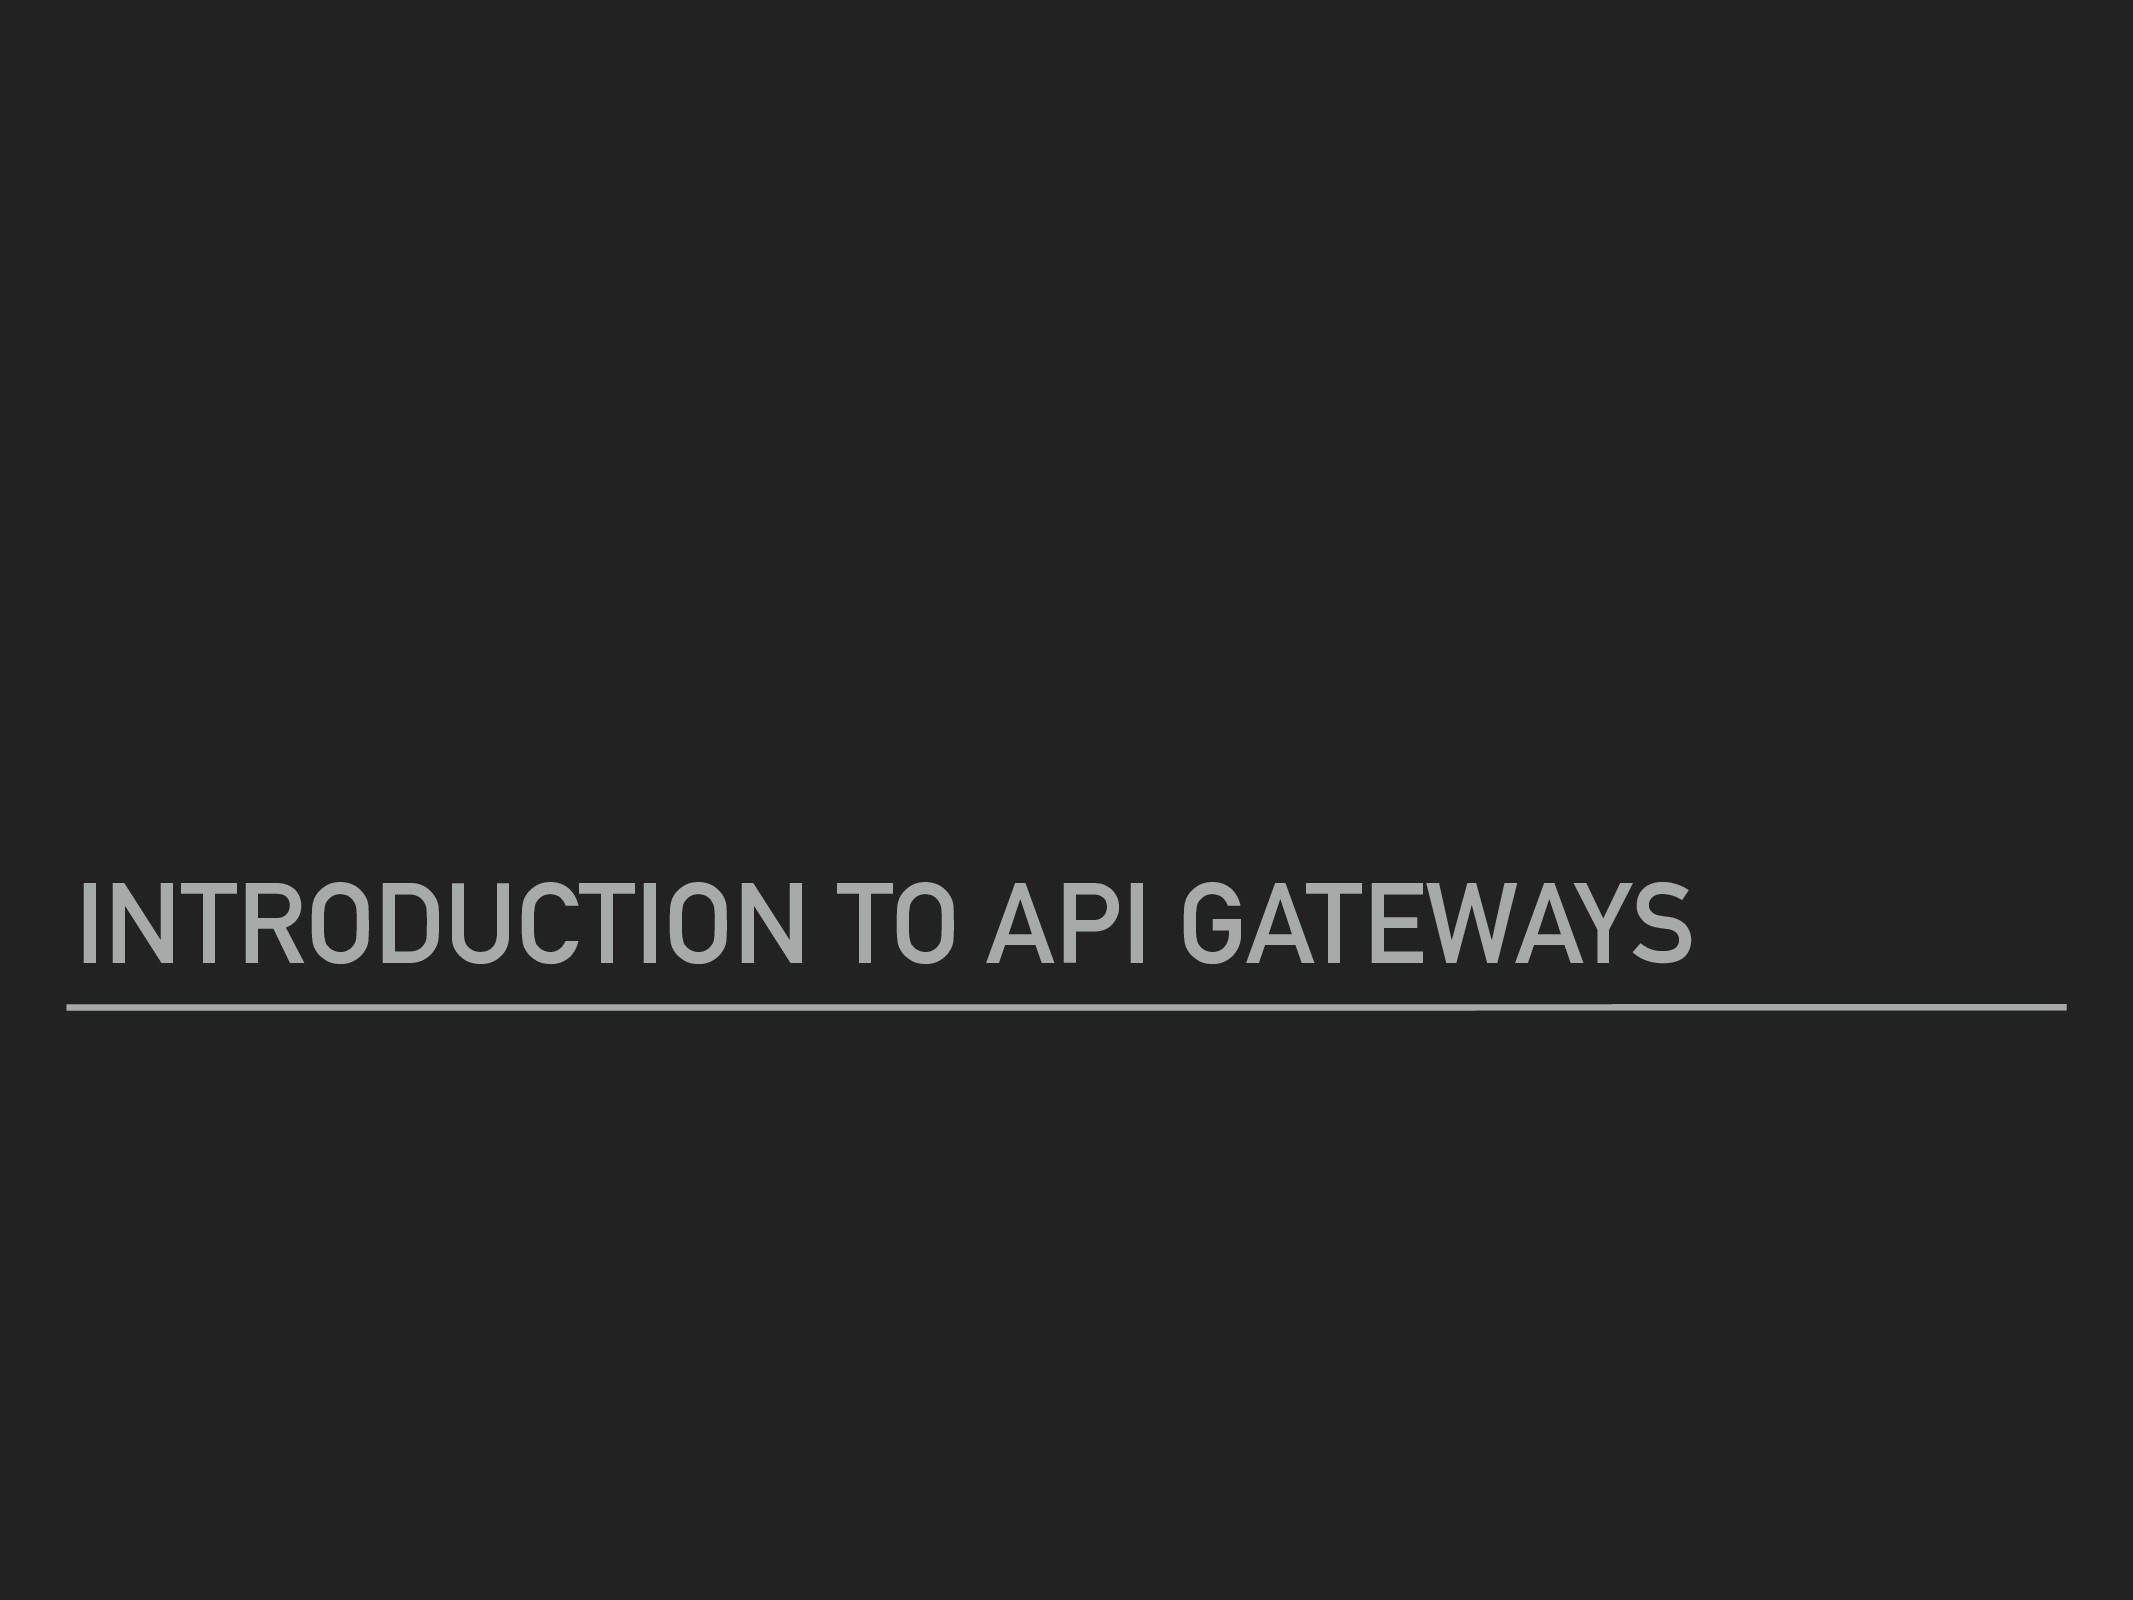 INTRODUCTION TO API GATEWAYS